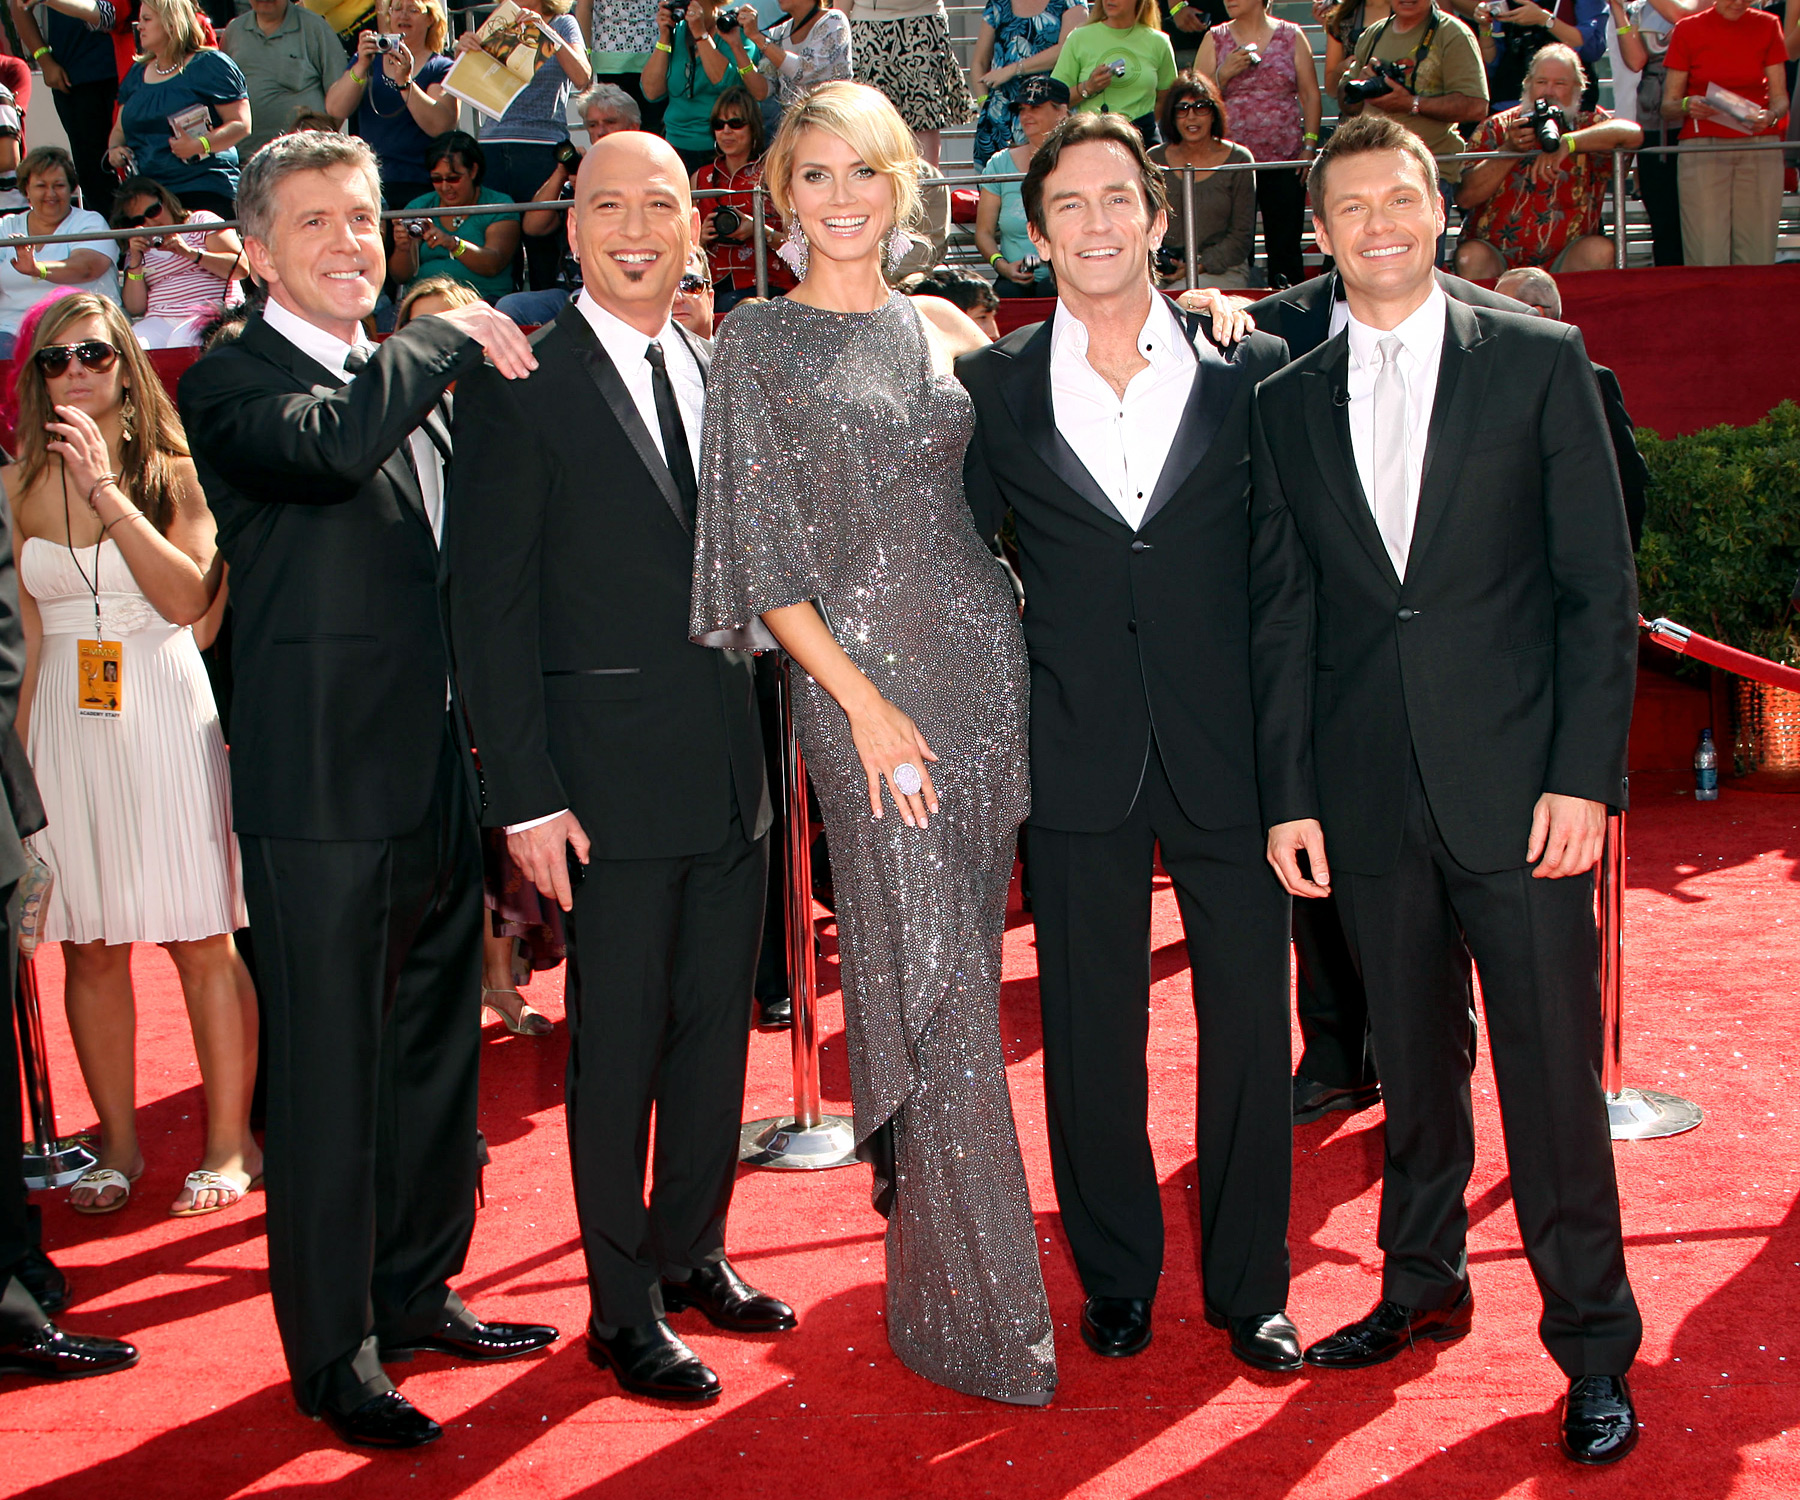 The nominees for Best Reality Show Host emceed the telecast to celebrate the category's introduction in 2008. Participating in a series of awkward off-the-cuff skits, the group teamed up one year after Seacrest hosted the show solo, to similarly dismal ratings.